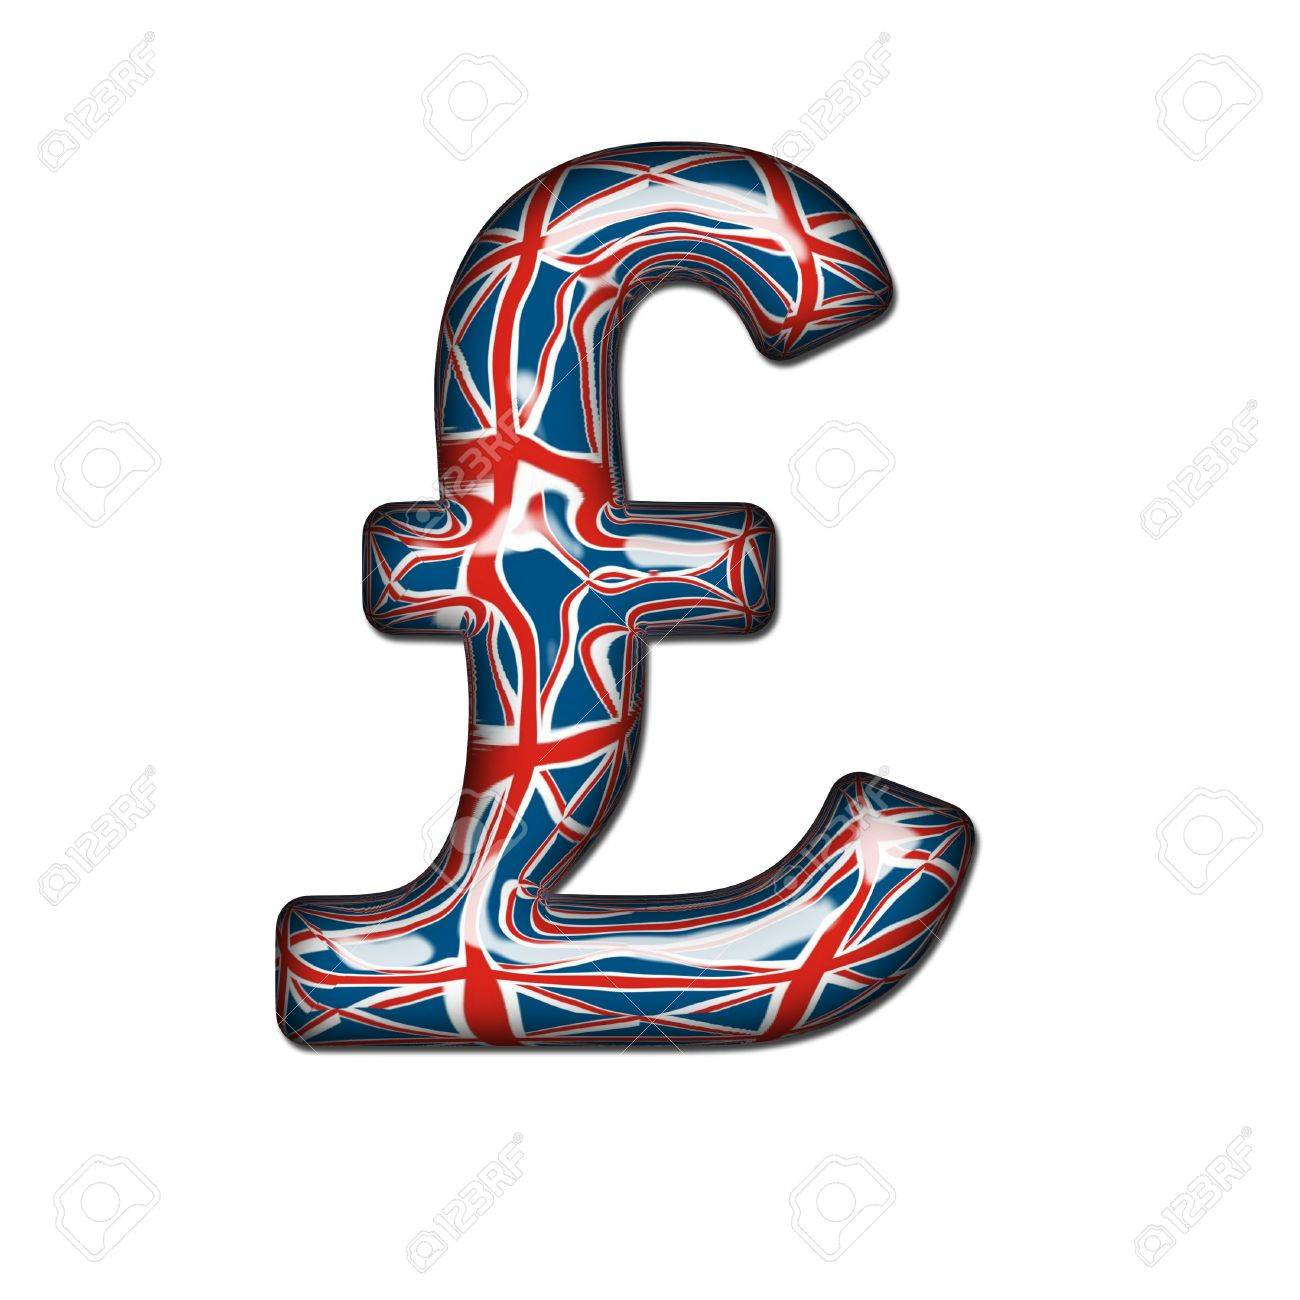 Glass british pound sterling symbol complete with clipping path glass british pound sterling symbol complete with clipping path stock photo 495038 biocorpaavc Gallery